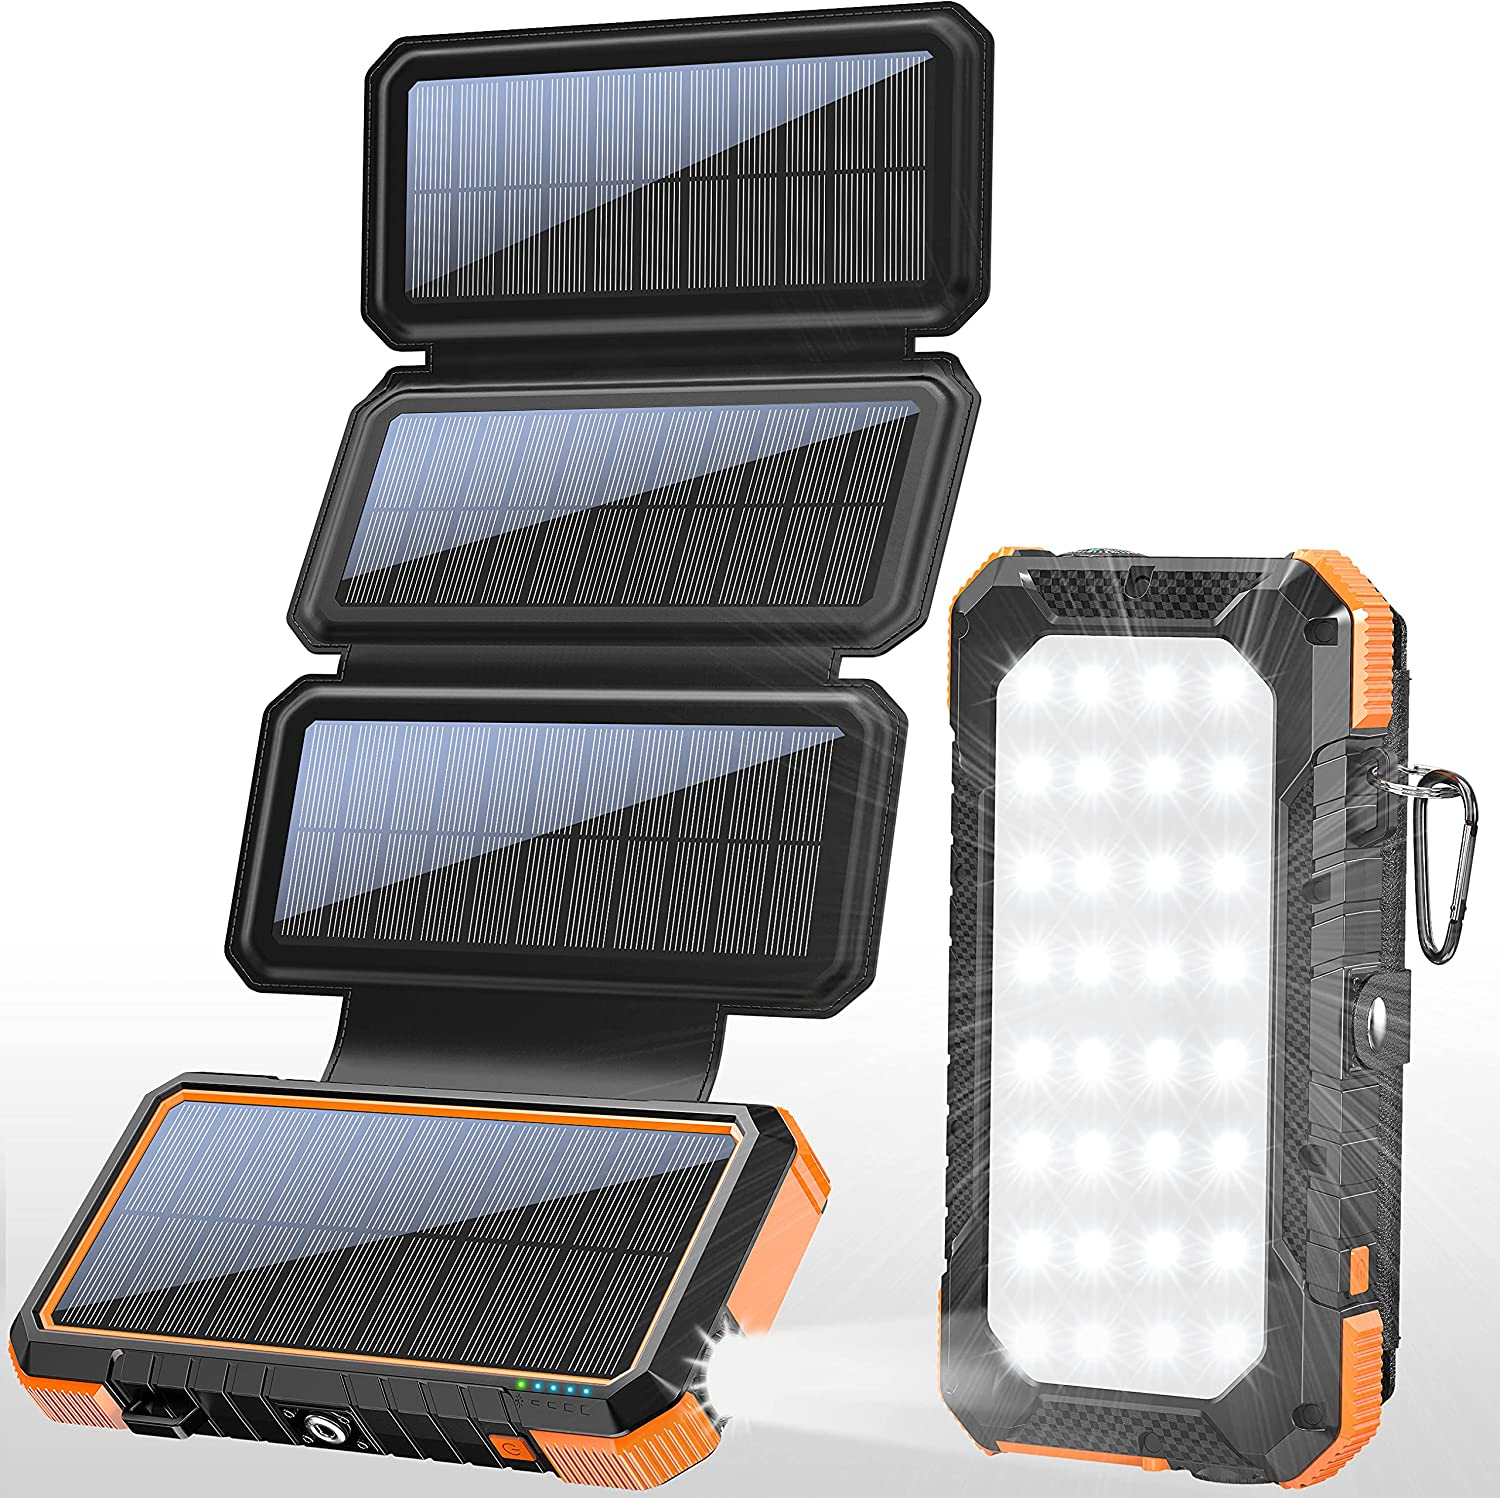 PD 18W Solar Panel Charger QC 3.0 Fast Charging Power Bank,Solar Phone Orange